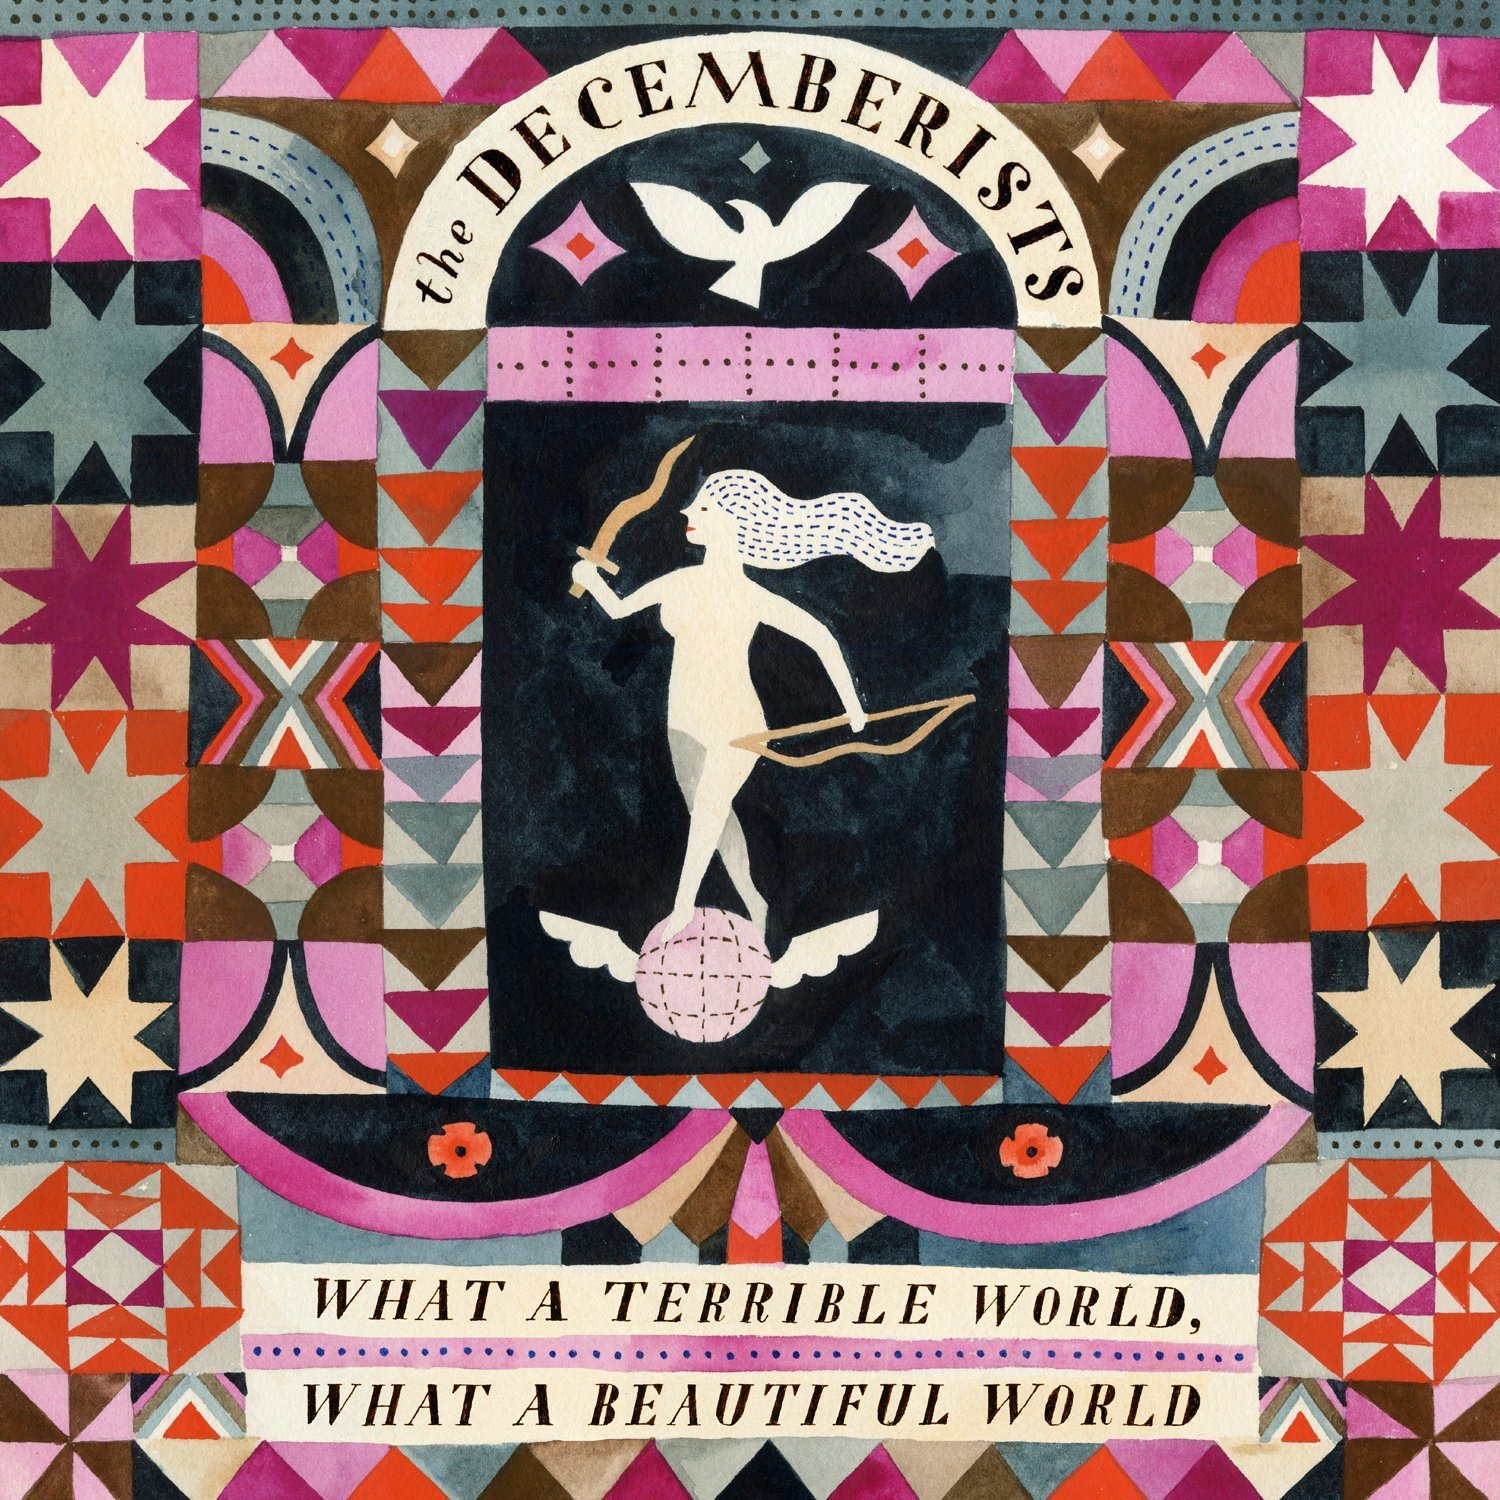 The Decemberists, What a Terrible World, What a Beautiful World